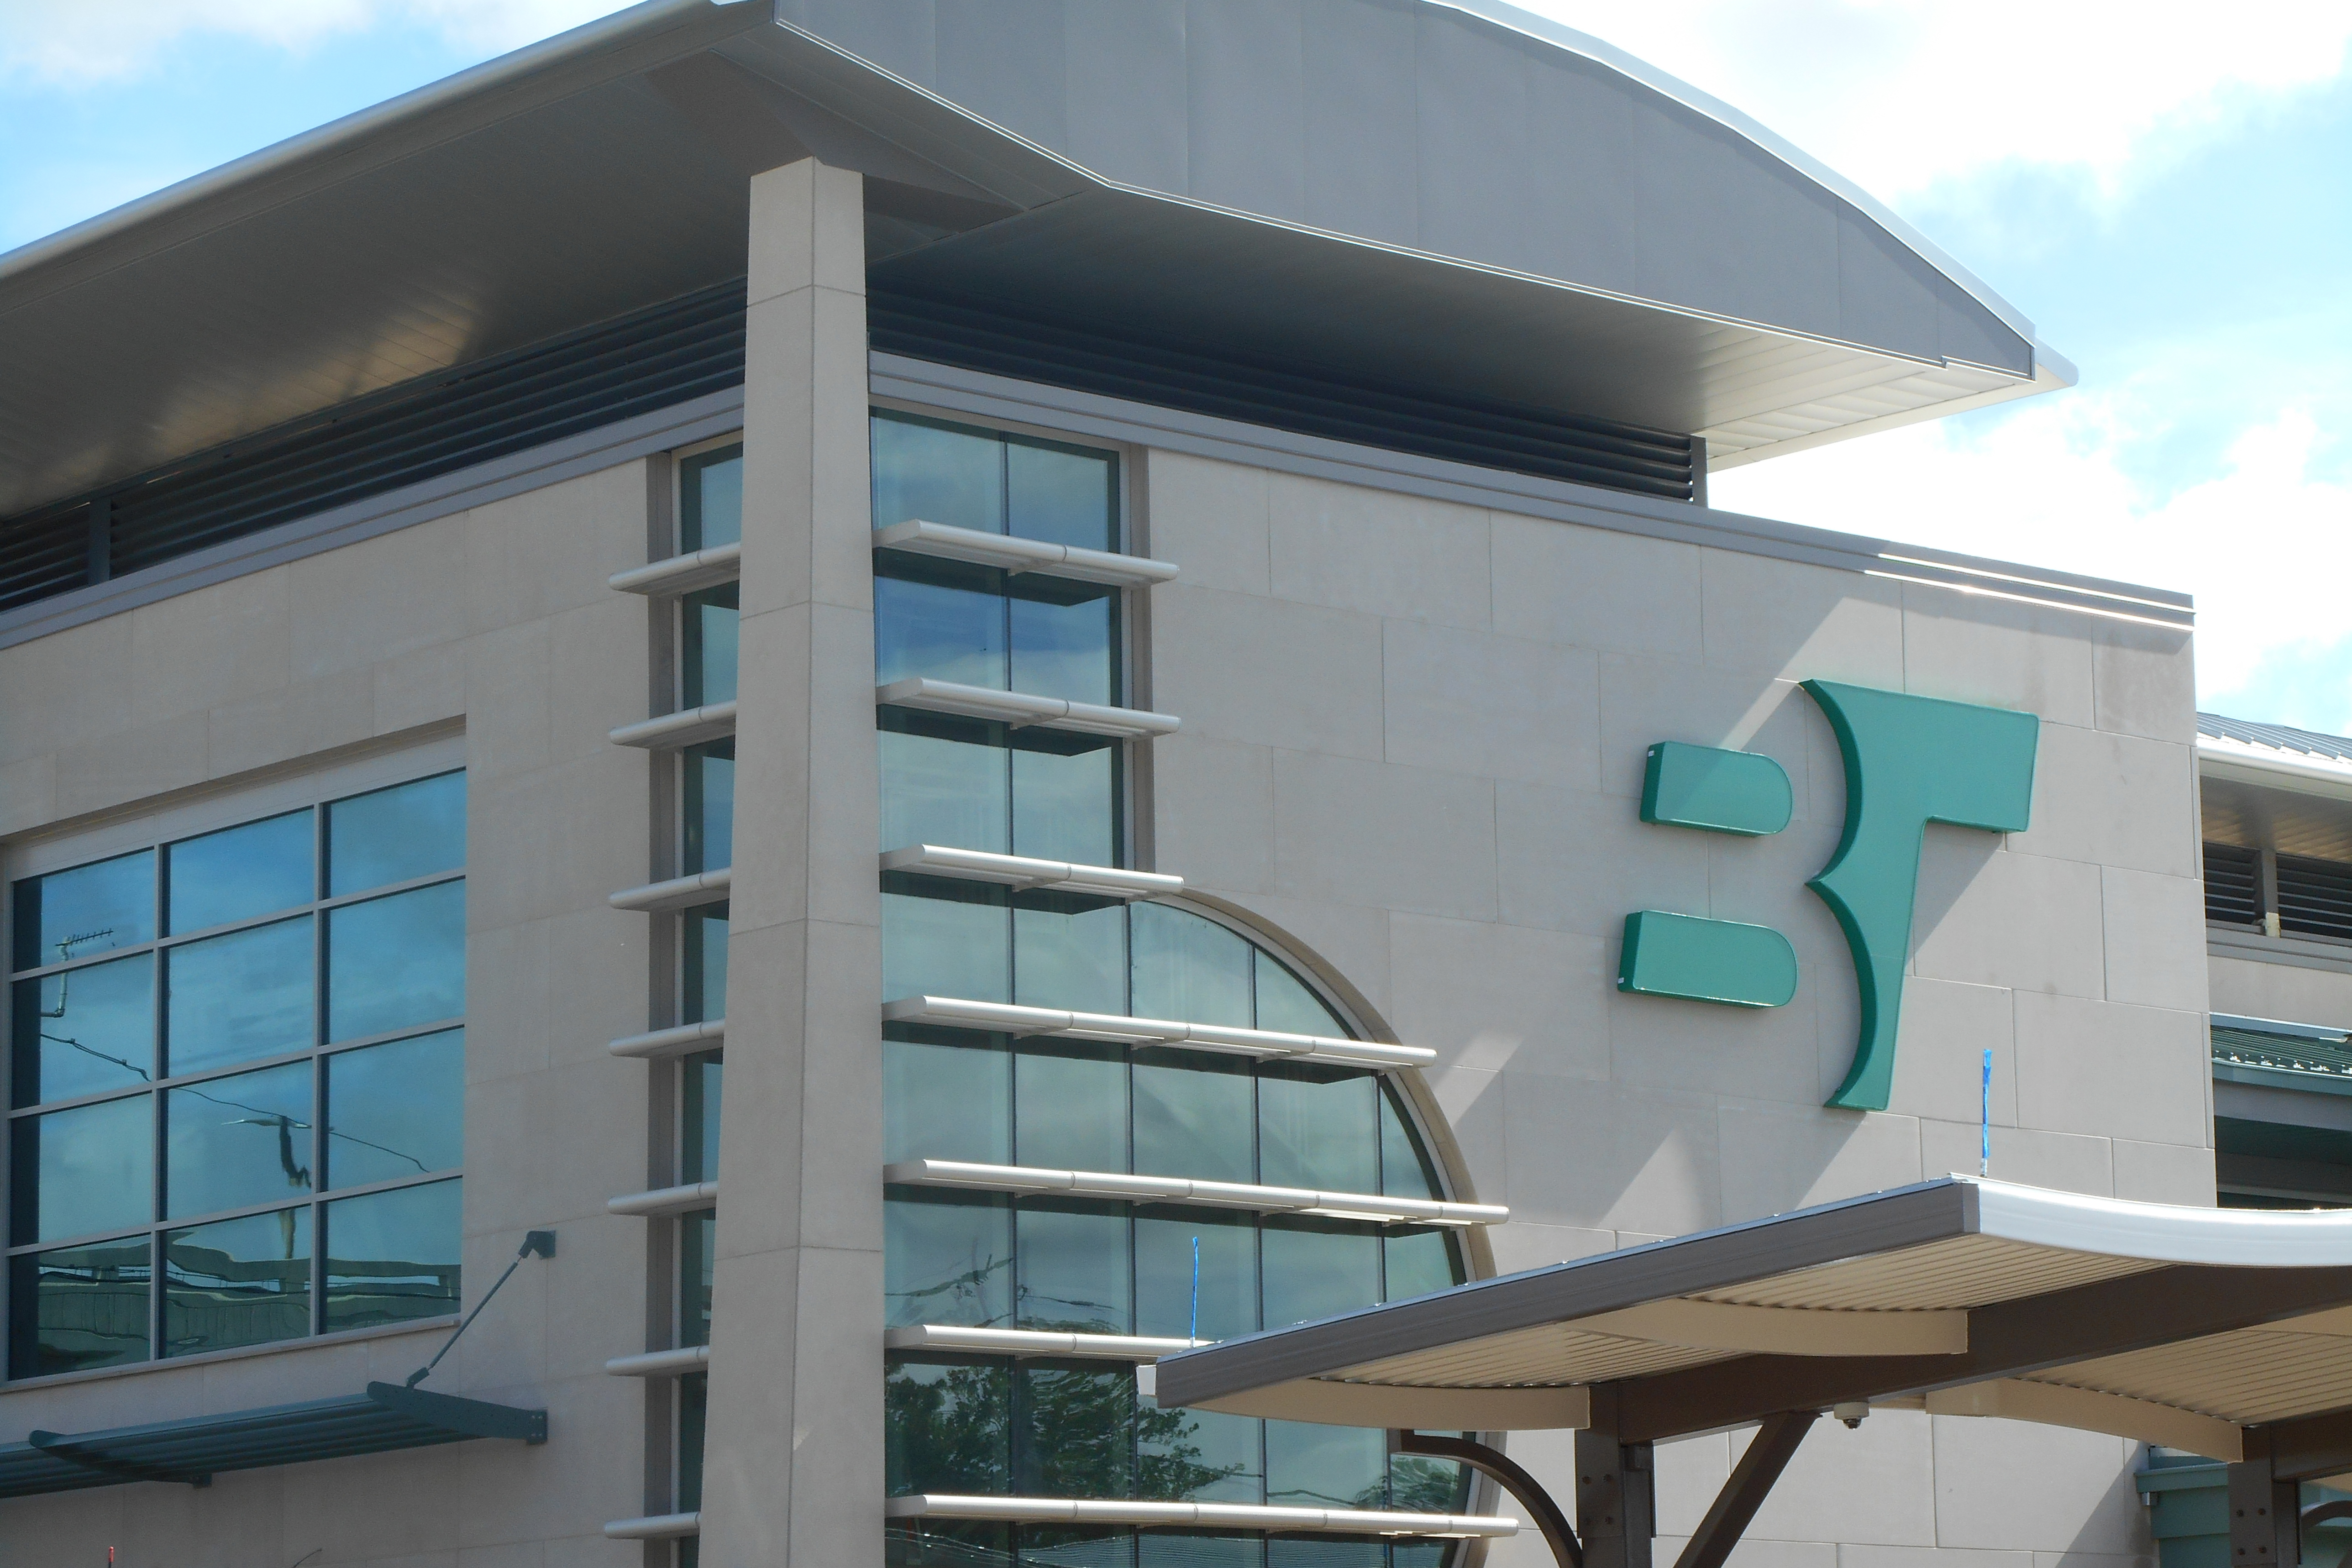 The Transit Center serves as the downtown hub for Bloomington Transit